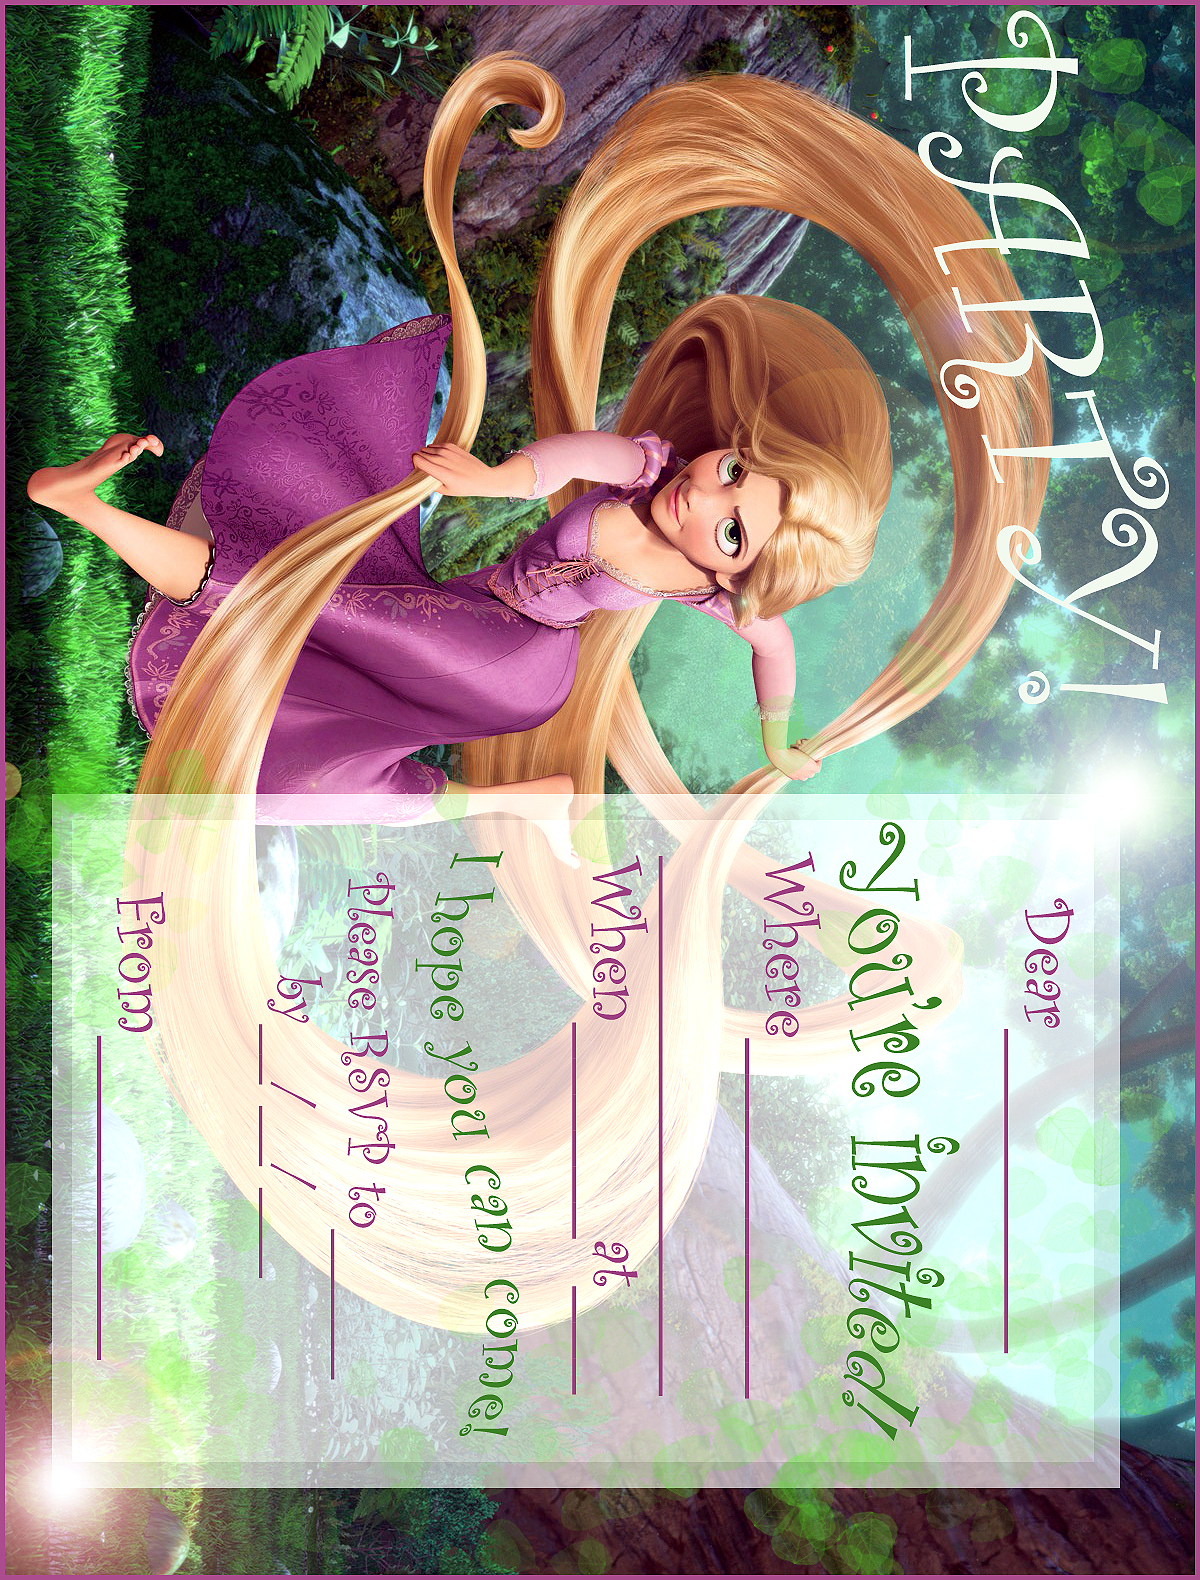 FREE PRINTABLE RAPUNZEL PARTY INVITATION FROM TANGLED Marketing